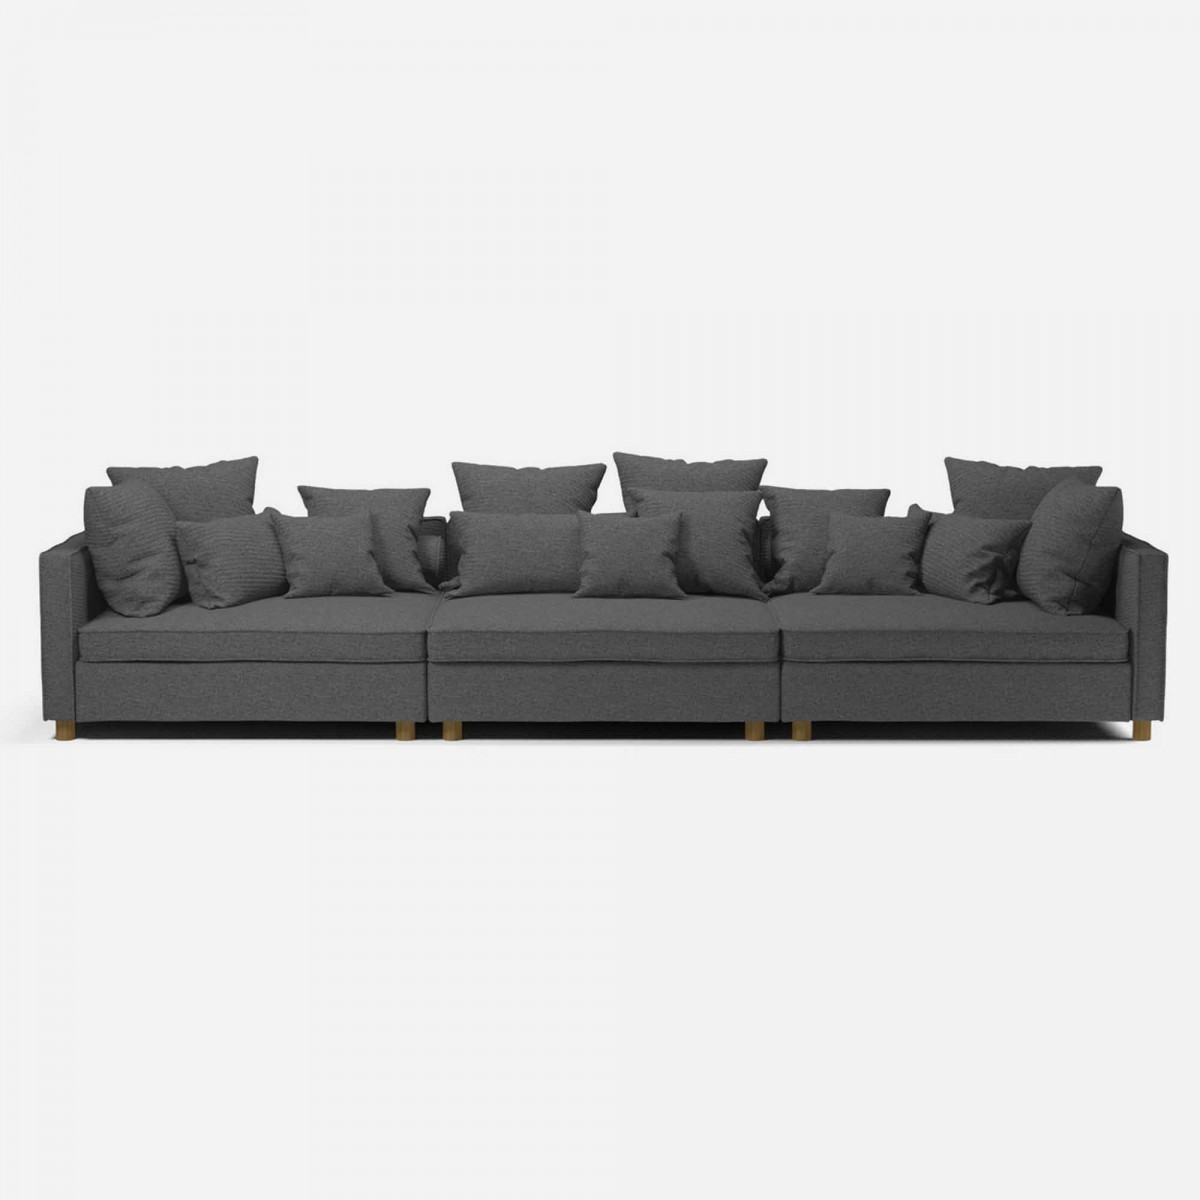 Big Sofa Vincent Mr Big Sofa 3 Units L Bolia